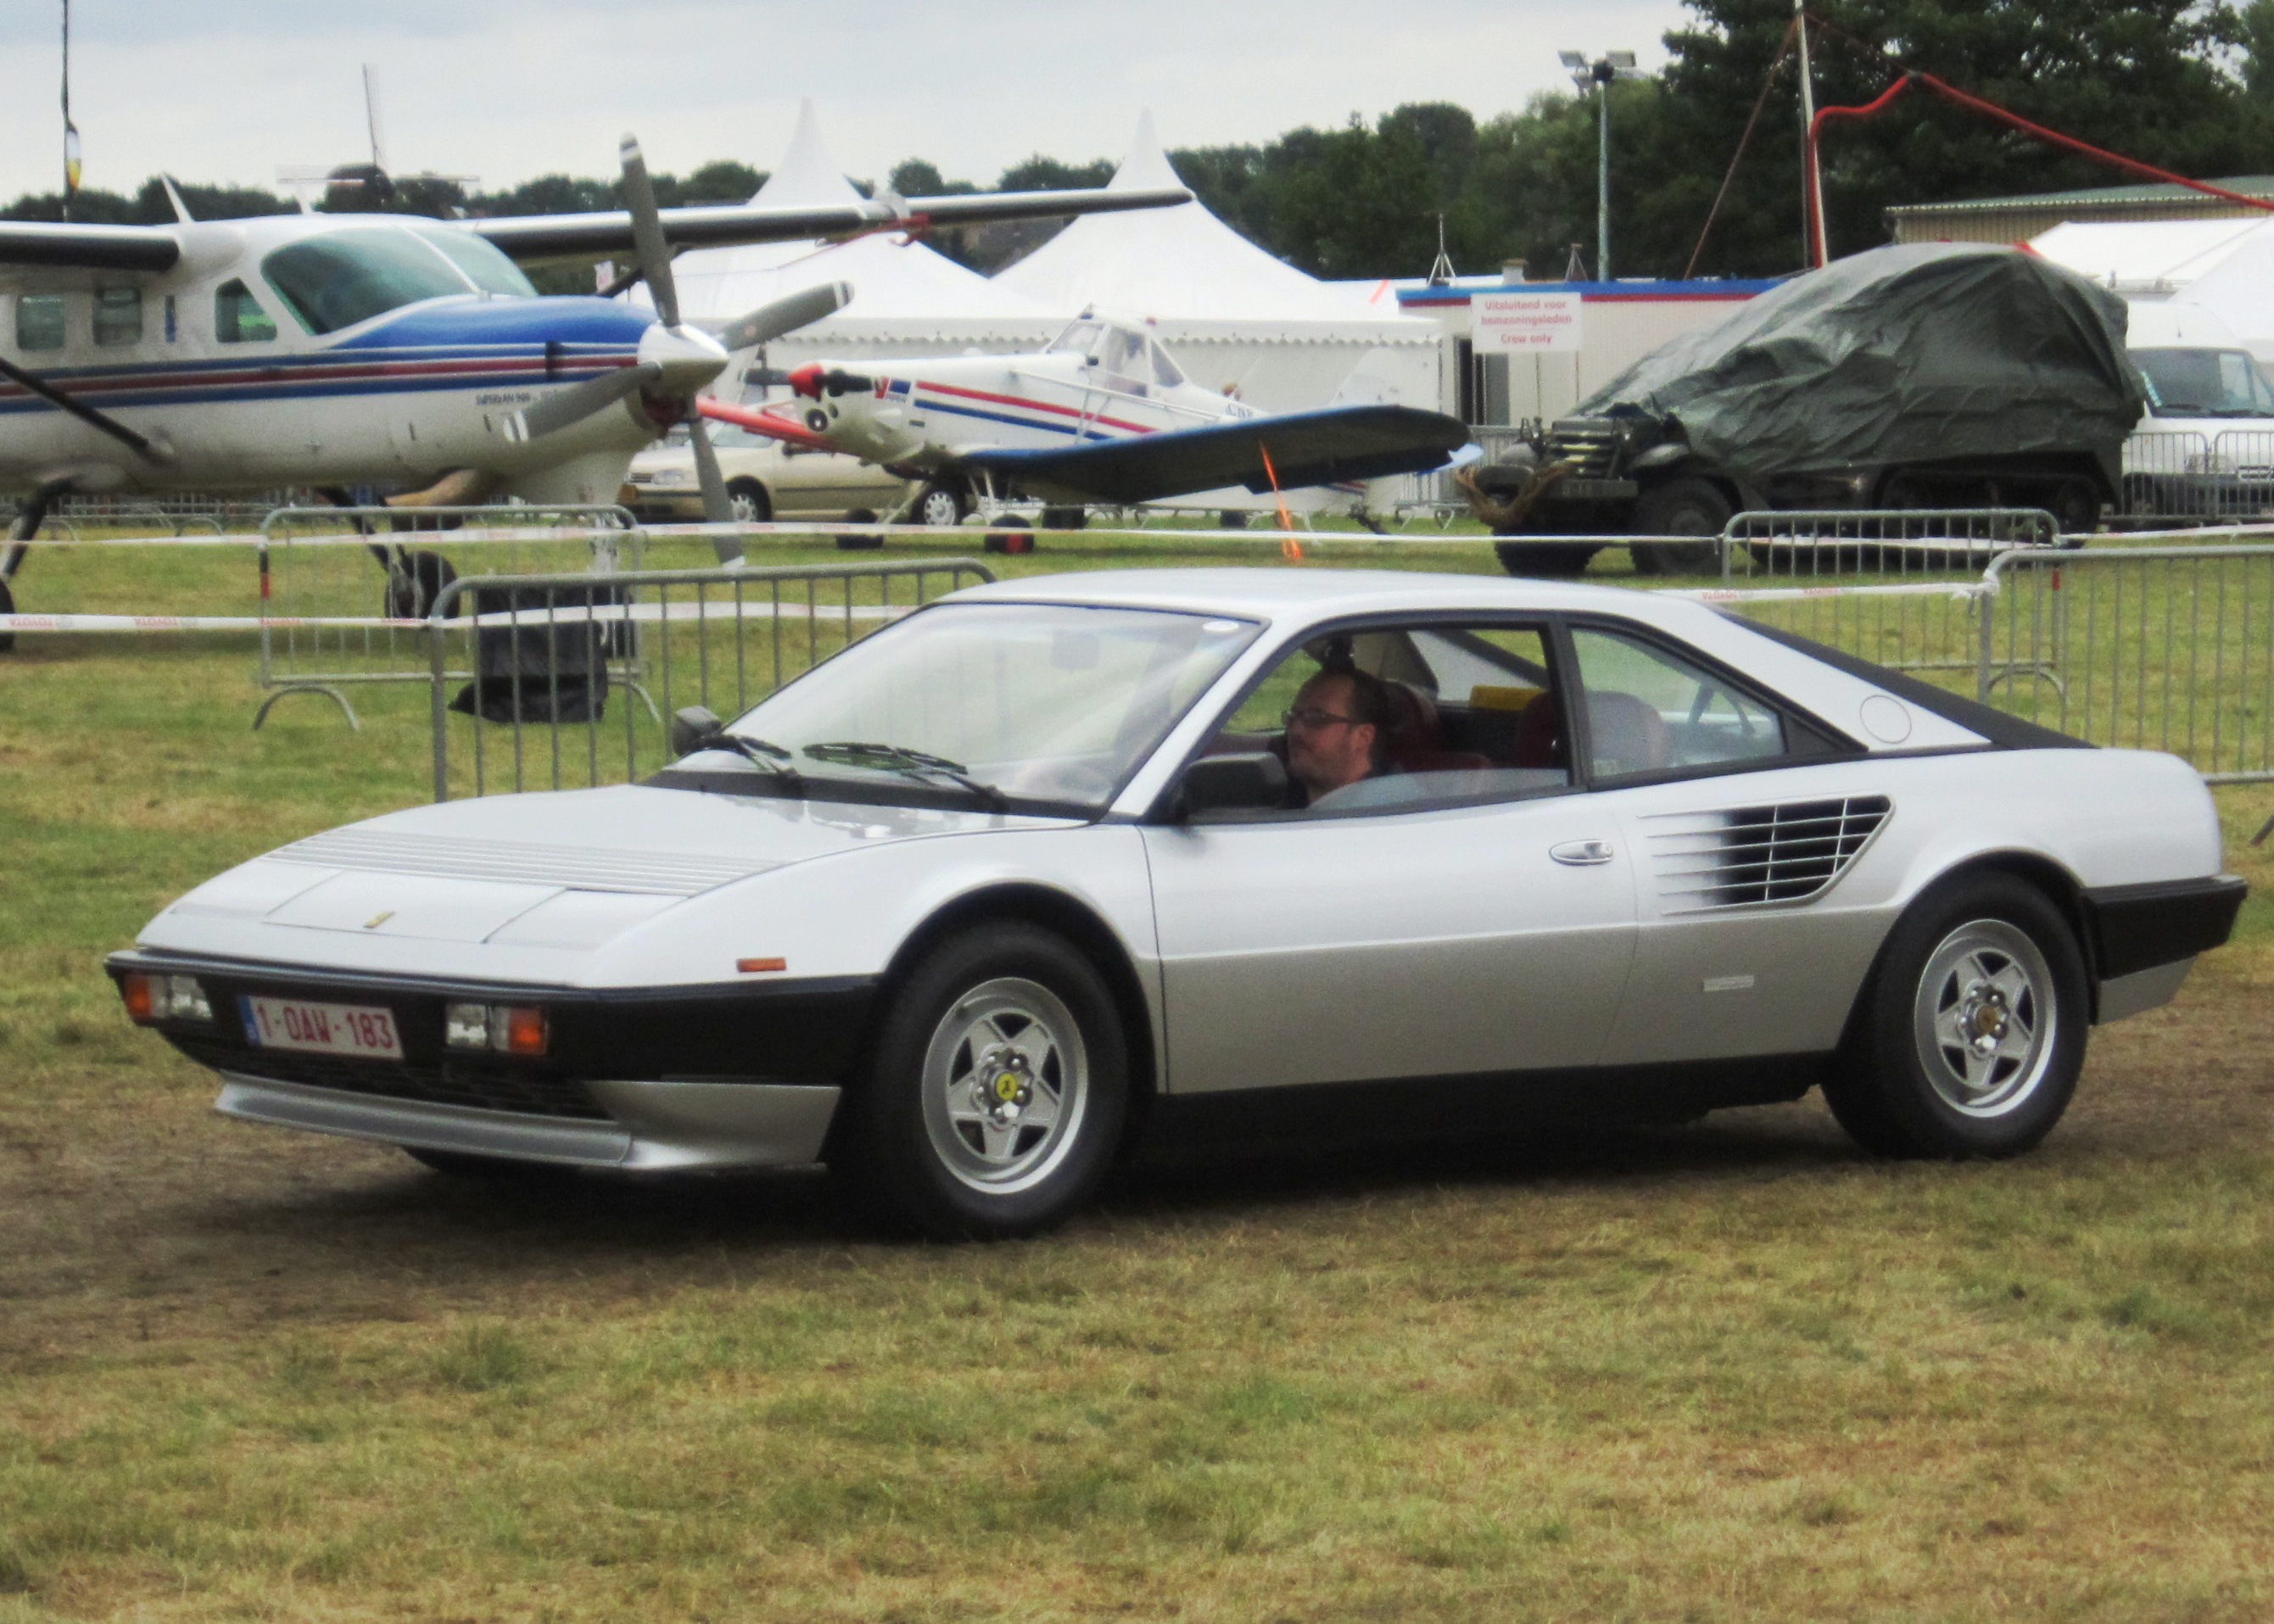 File Ferrari Mondial 8 In Vlaams Brabant Jpg Wikimedia Commons